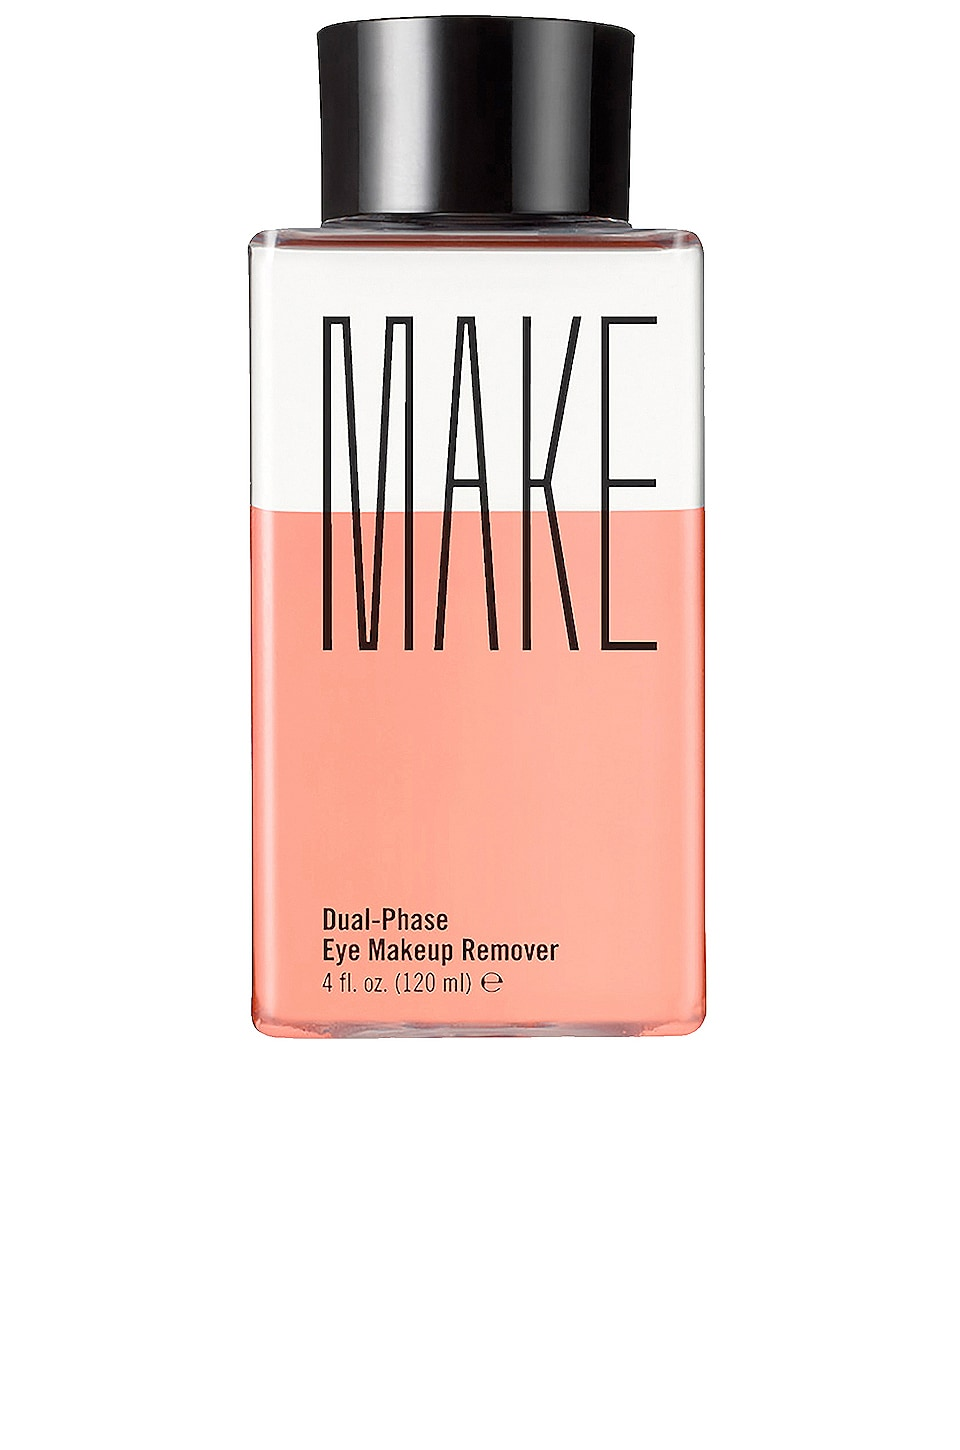 MAKE DÉMAQUILLANT DUAL-PHASE EYE MAKEUP REMOVER